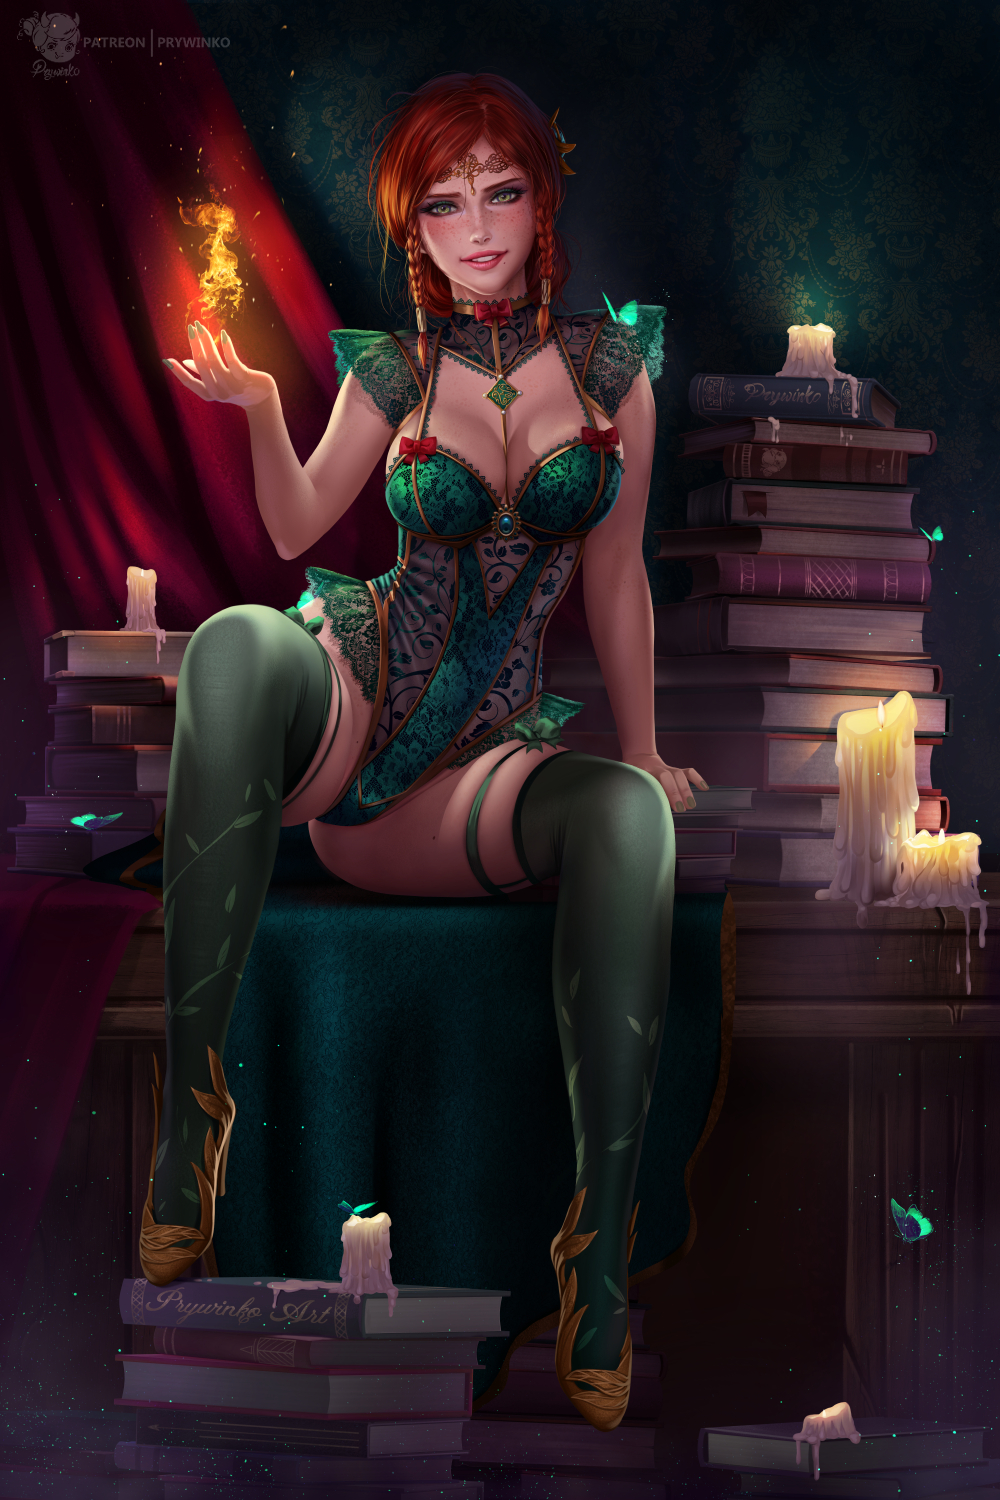 witcher triss nude 3 the League of legends katarina hentai